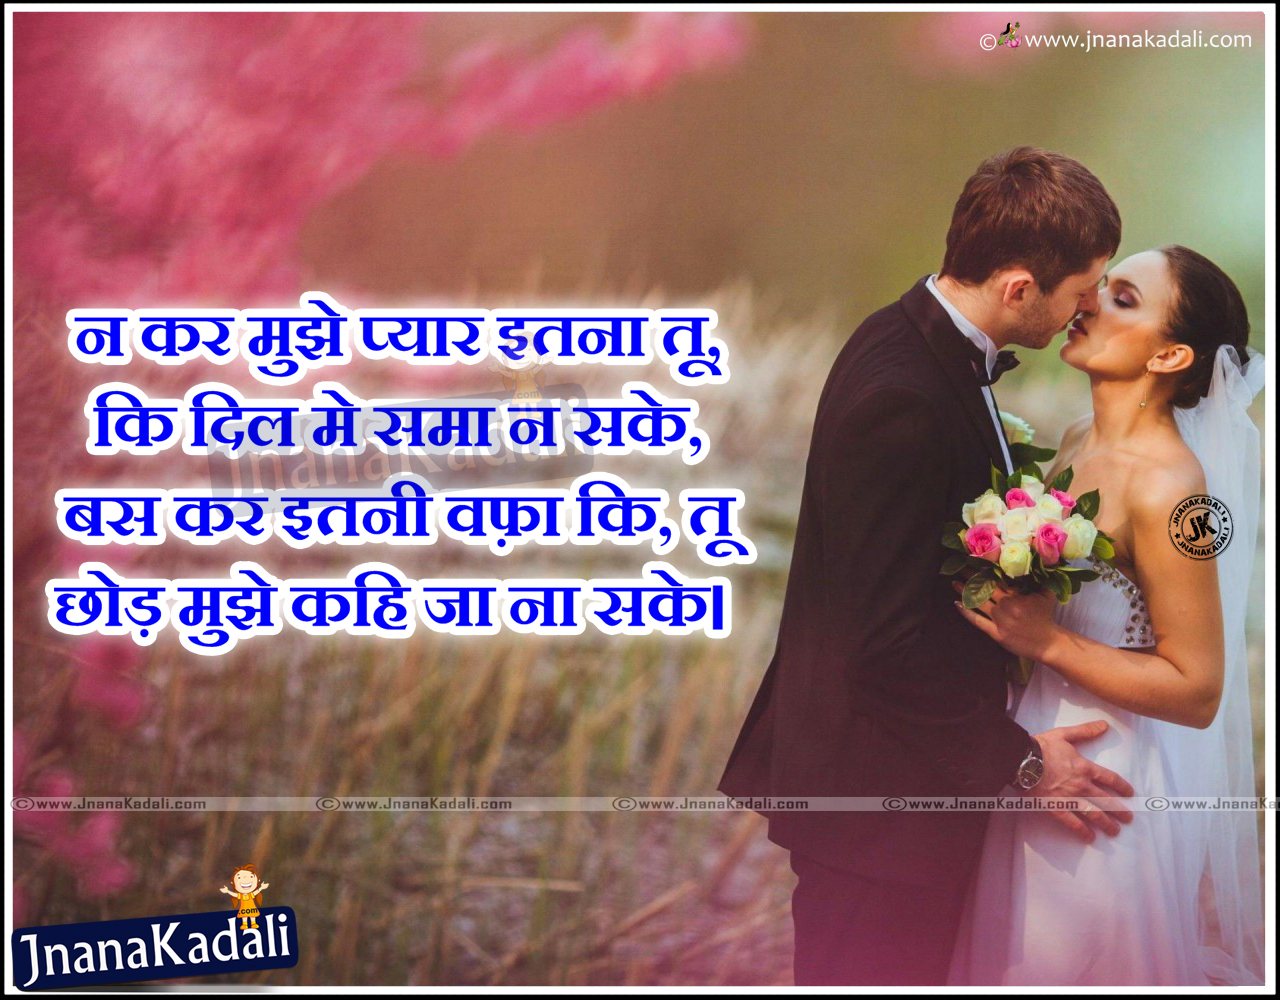 Wallpaper Of True Love Quotes In Hindi Animaxwallpapercom